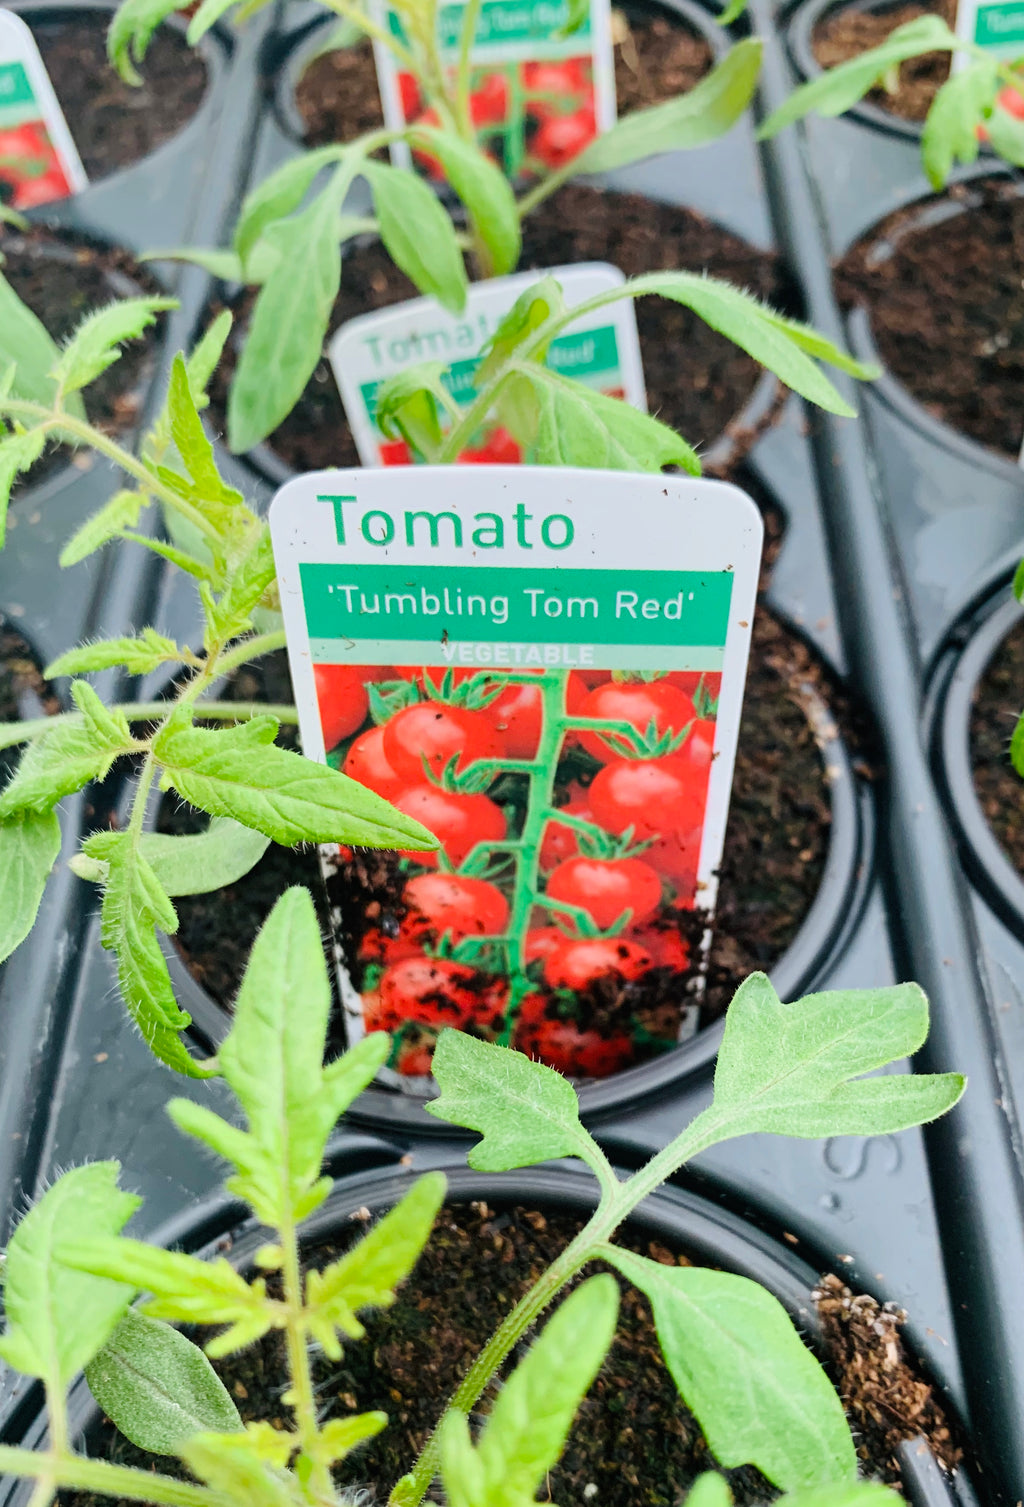 Tomato Tumbling Tom Red